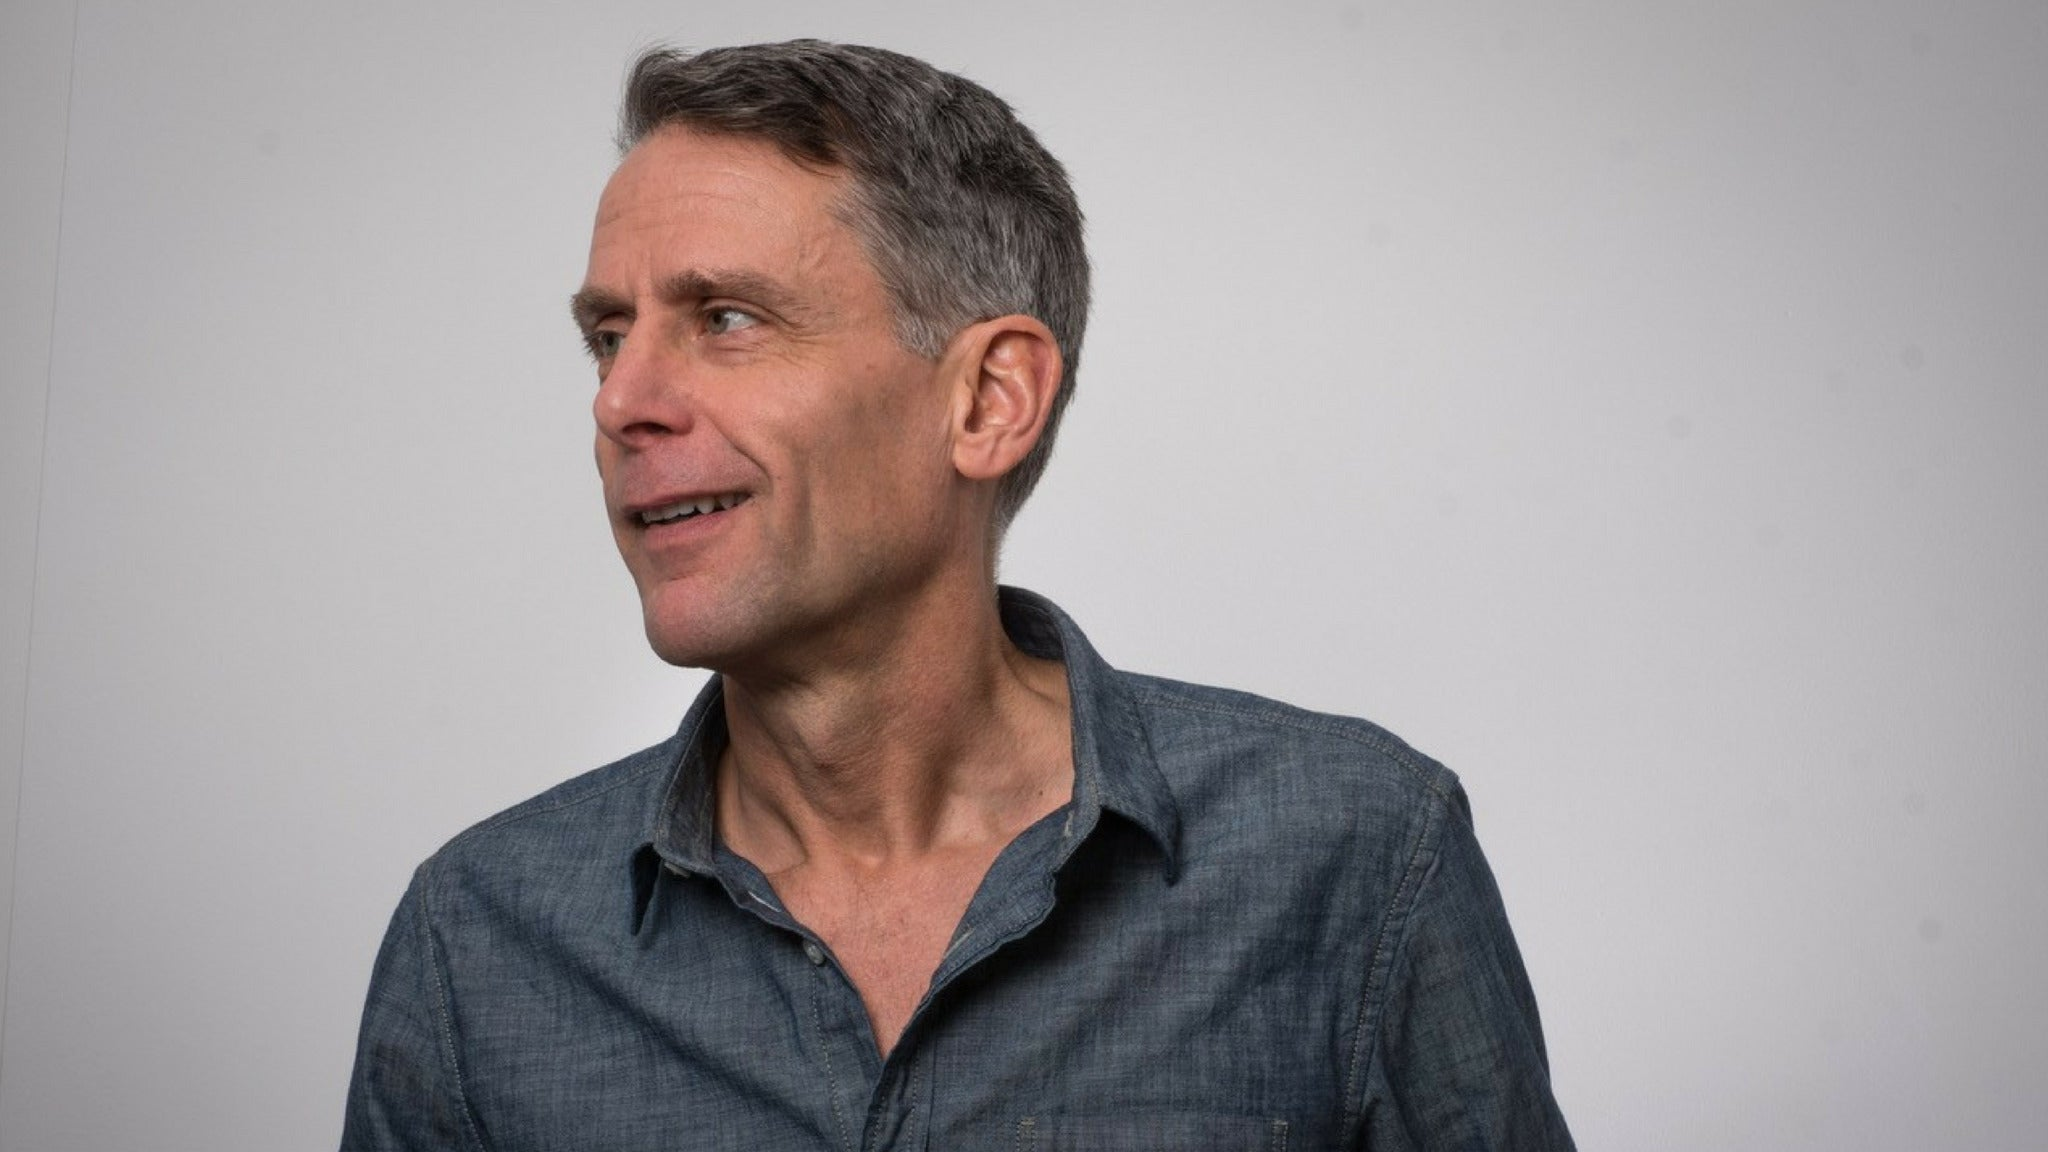 Scott Capurro at Punch Line Comedy Club - San Francisco